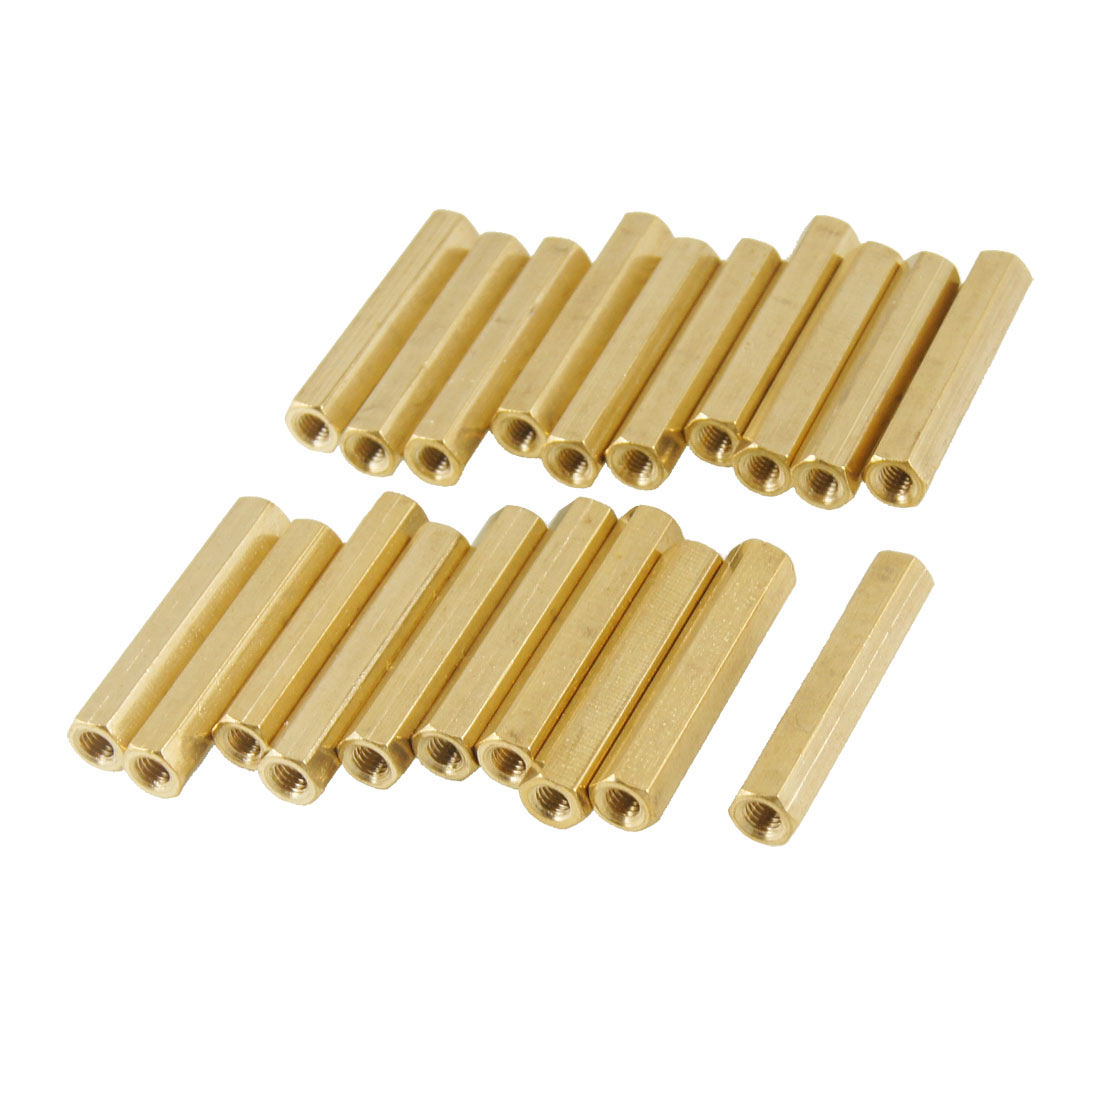 20 Pcs Brass M3X26mm Hex Head Female Screw PCB Standoffs Spacers Support